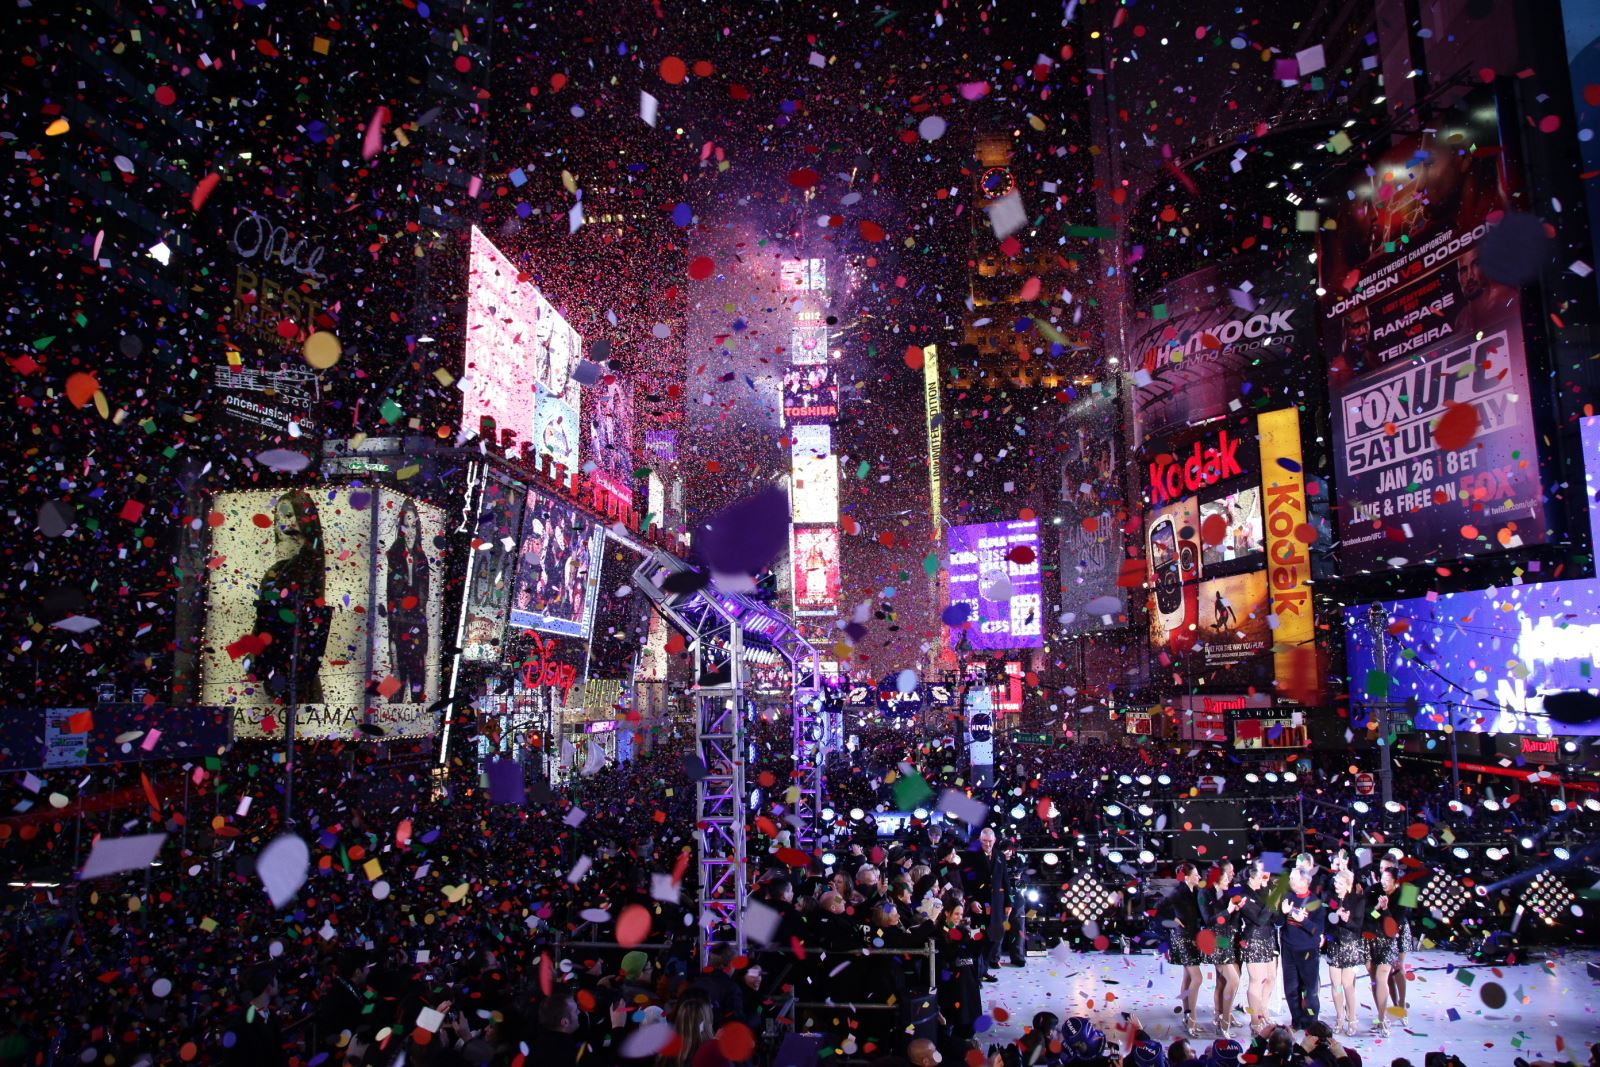 New-York-City-New-Year-2013-Ball-Drop-in-Times-Square-room-suggestion